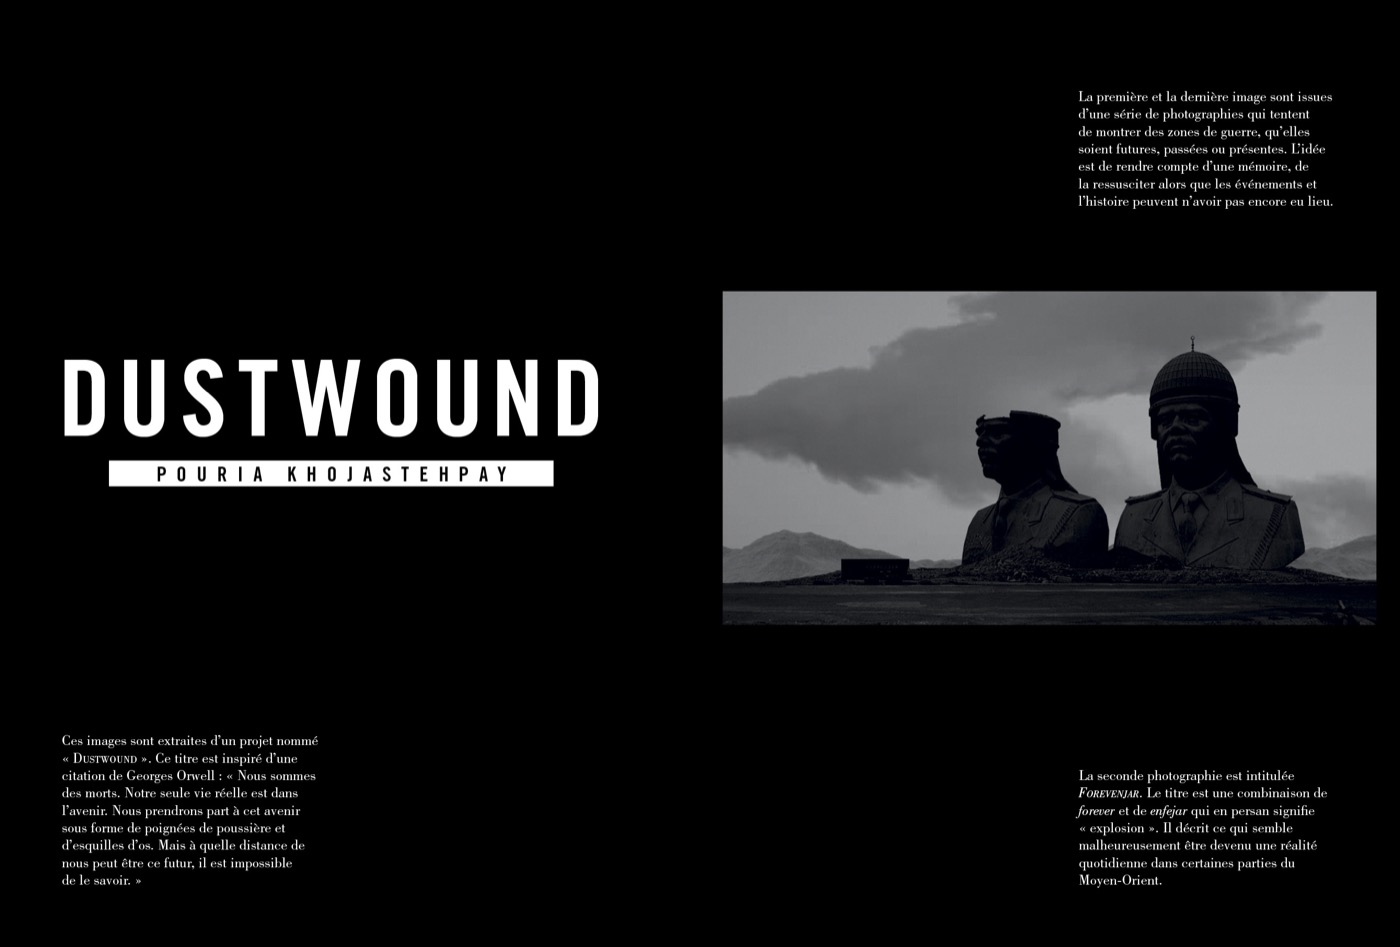 Photographies de Pouria Khojastehpay, Dustwound